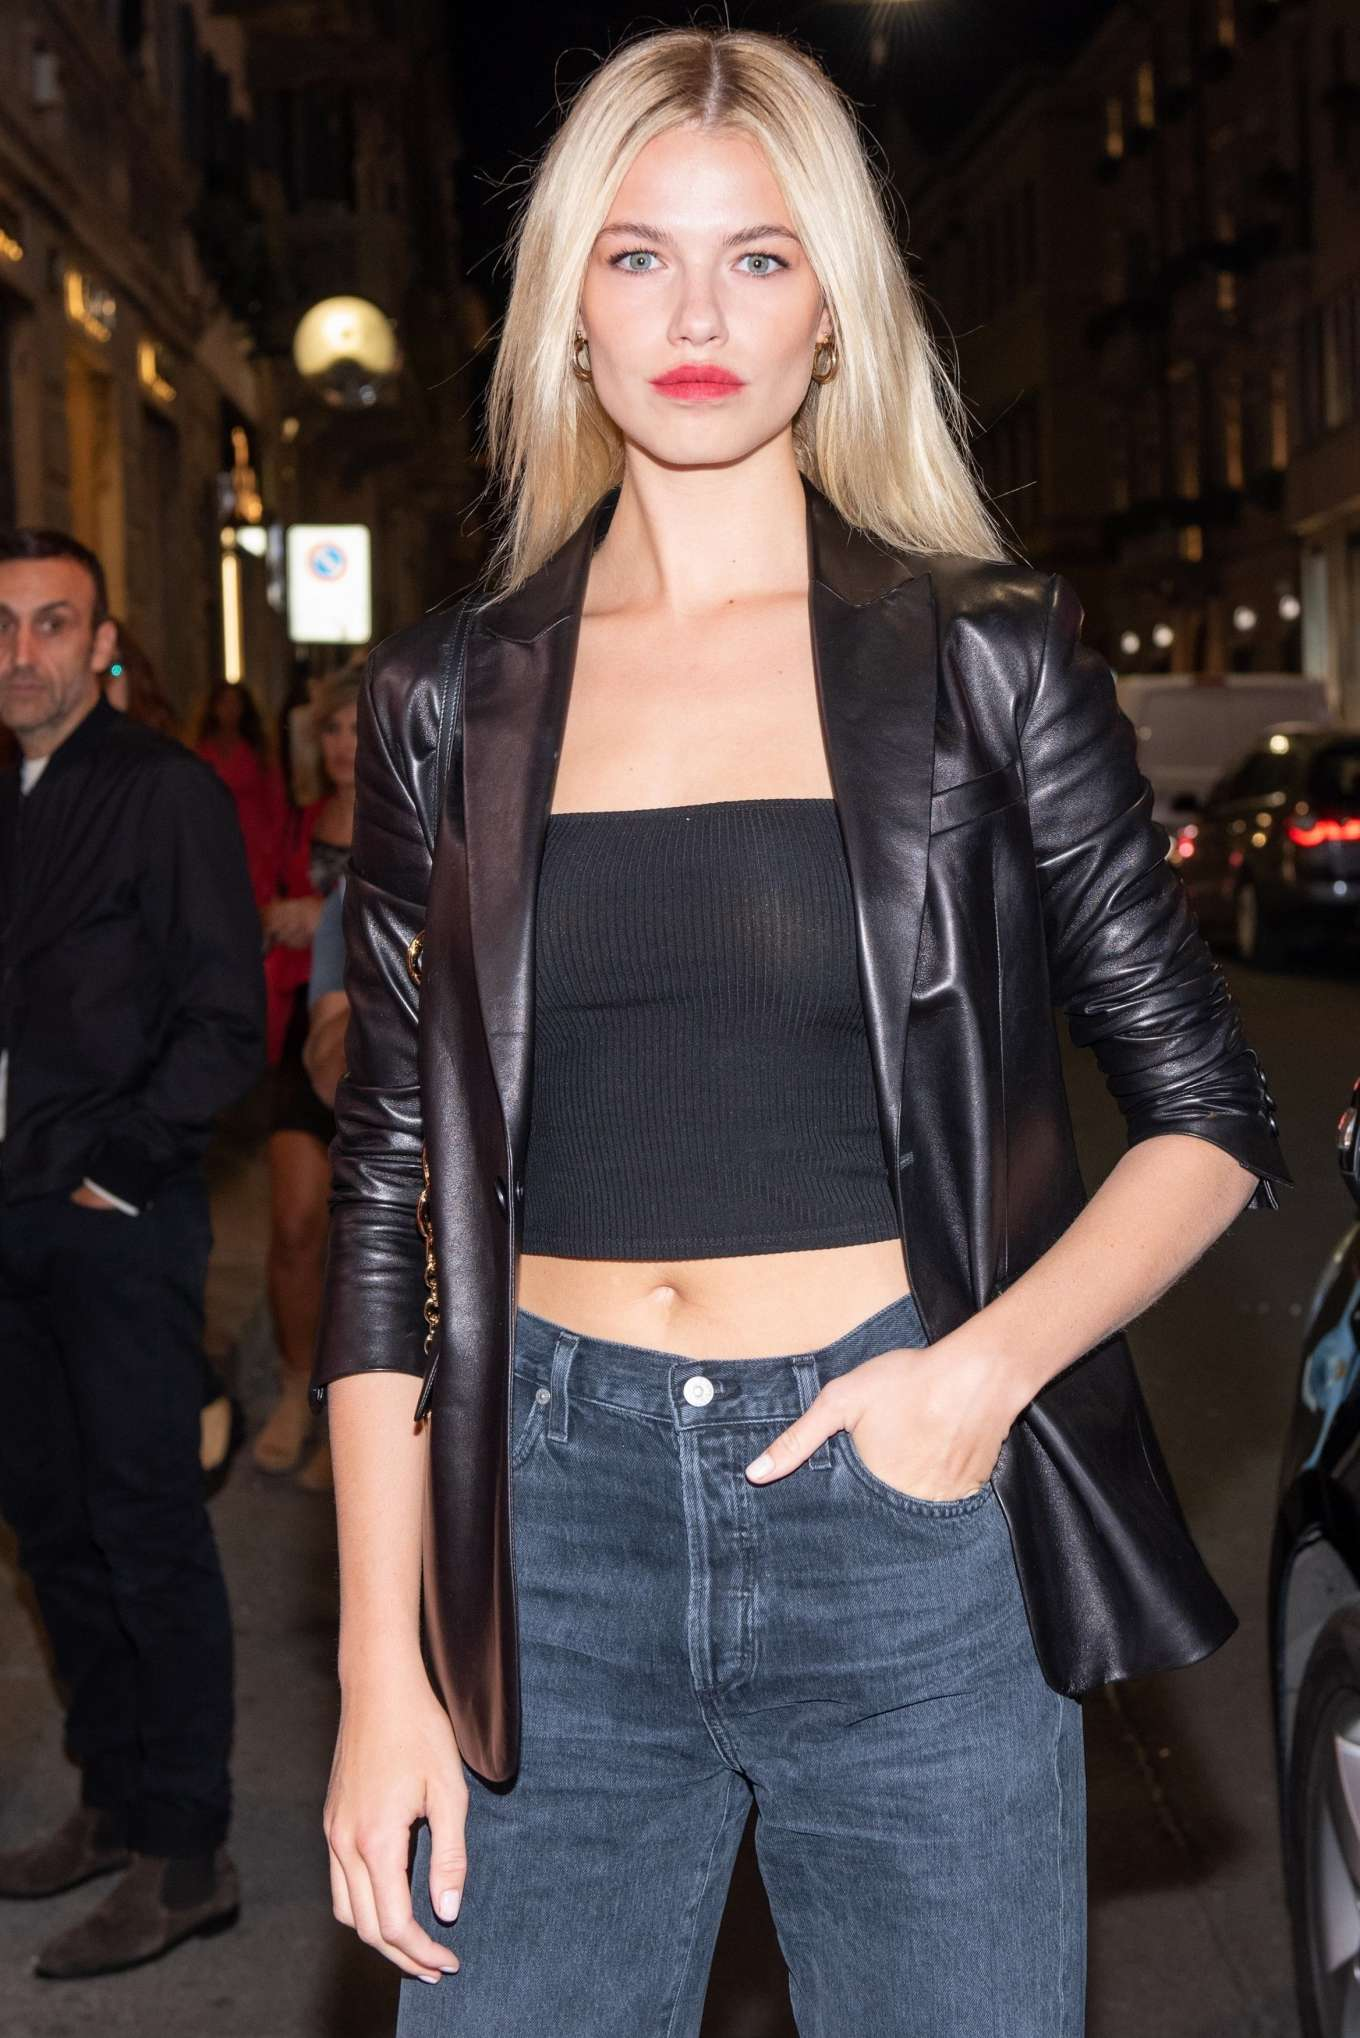 Hailey Clauson - Arrives at Tod's store opening at Milan Fashion Week